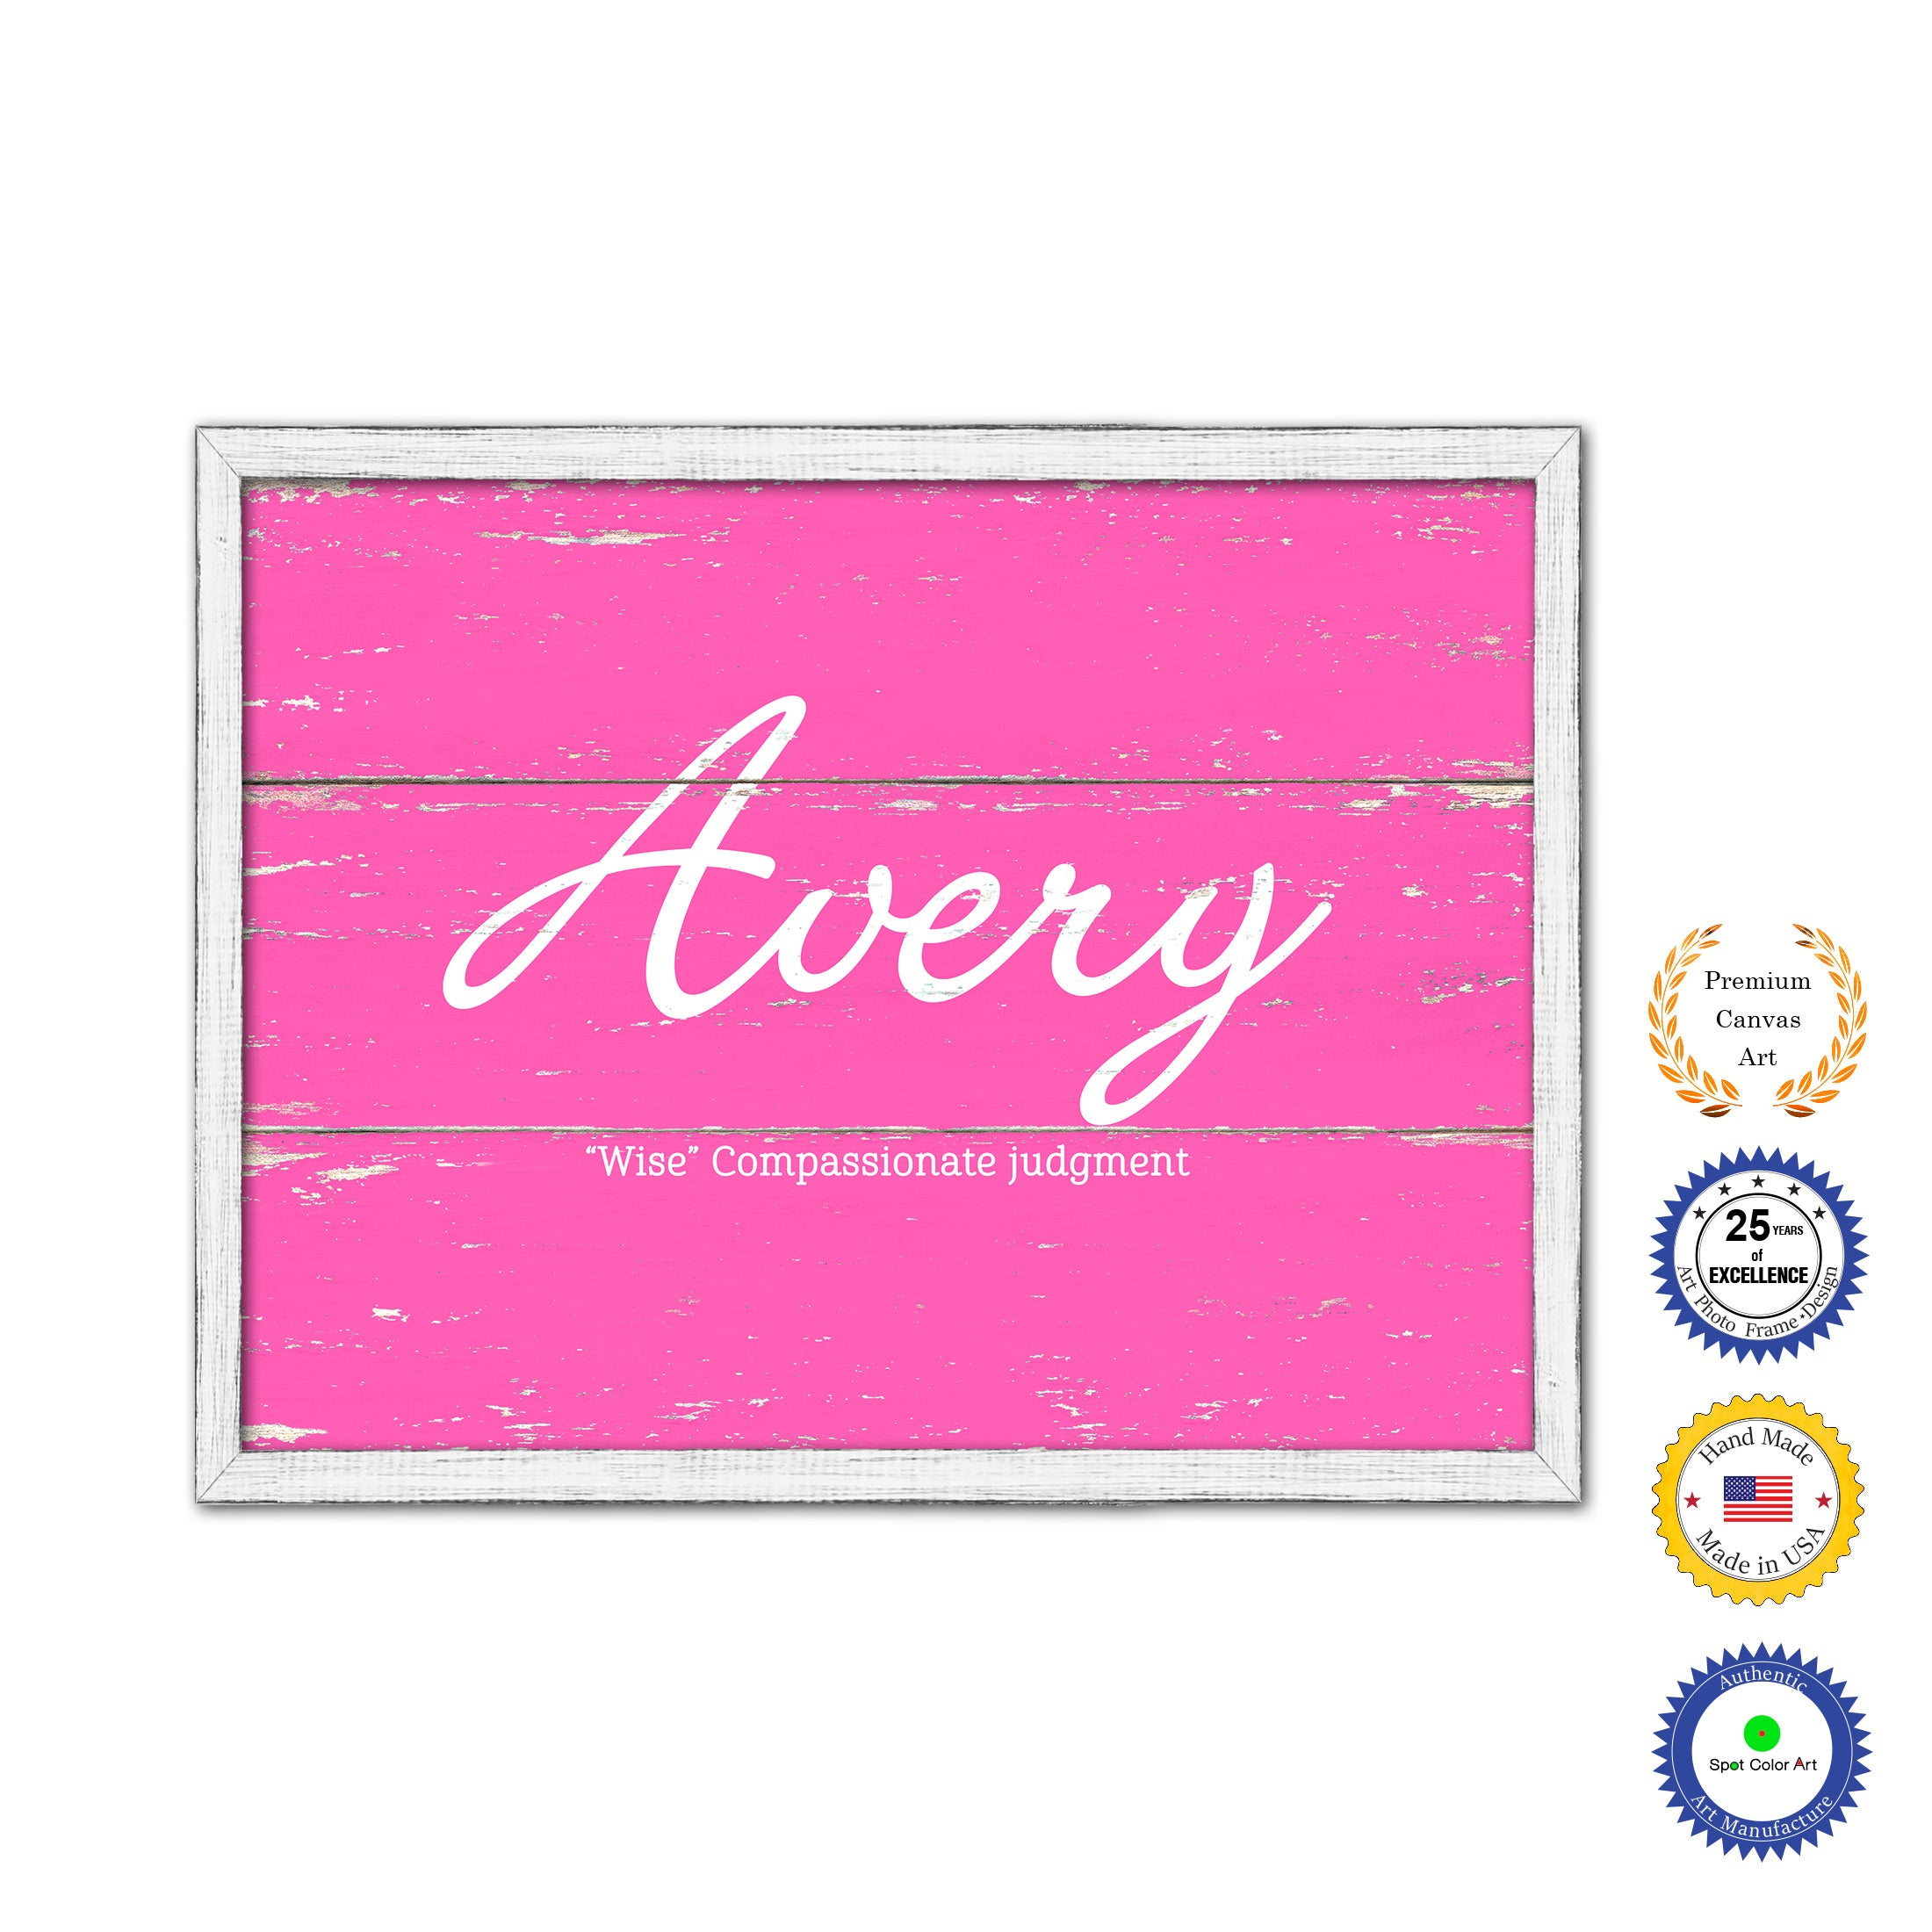 Avery Name Plate White Wash Wood Frame Canvas Print Boutique Cottage Decor Shabby Chic